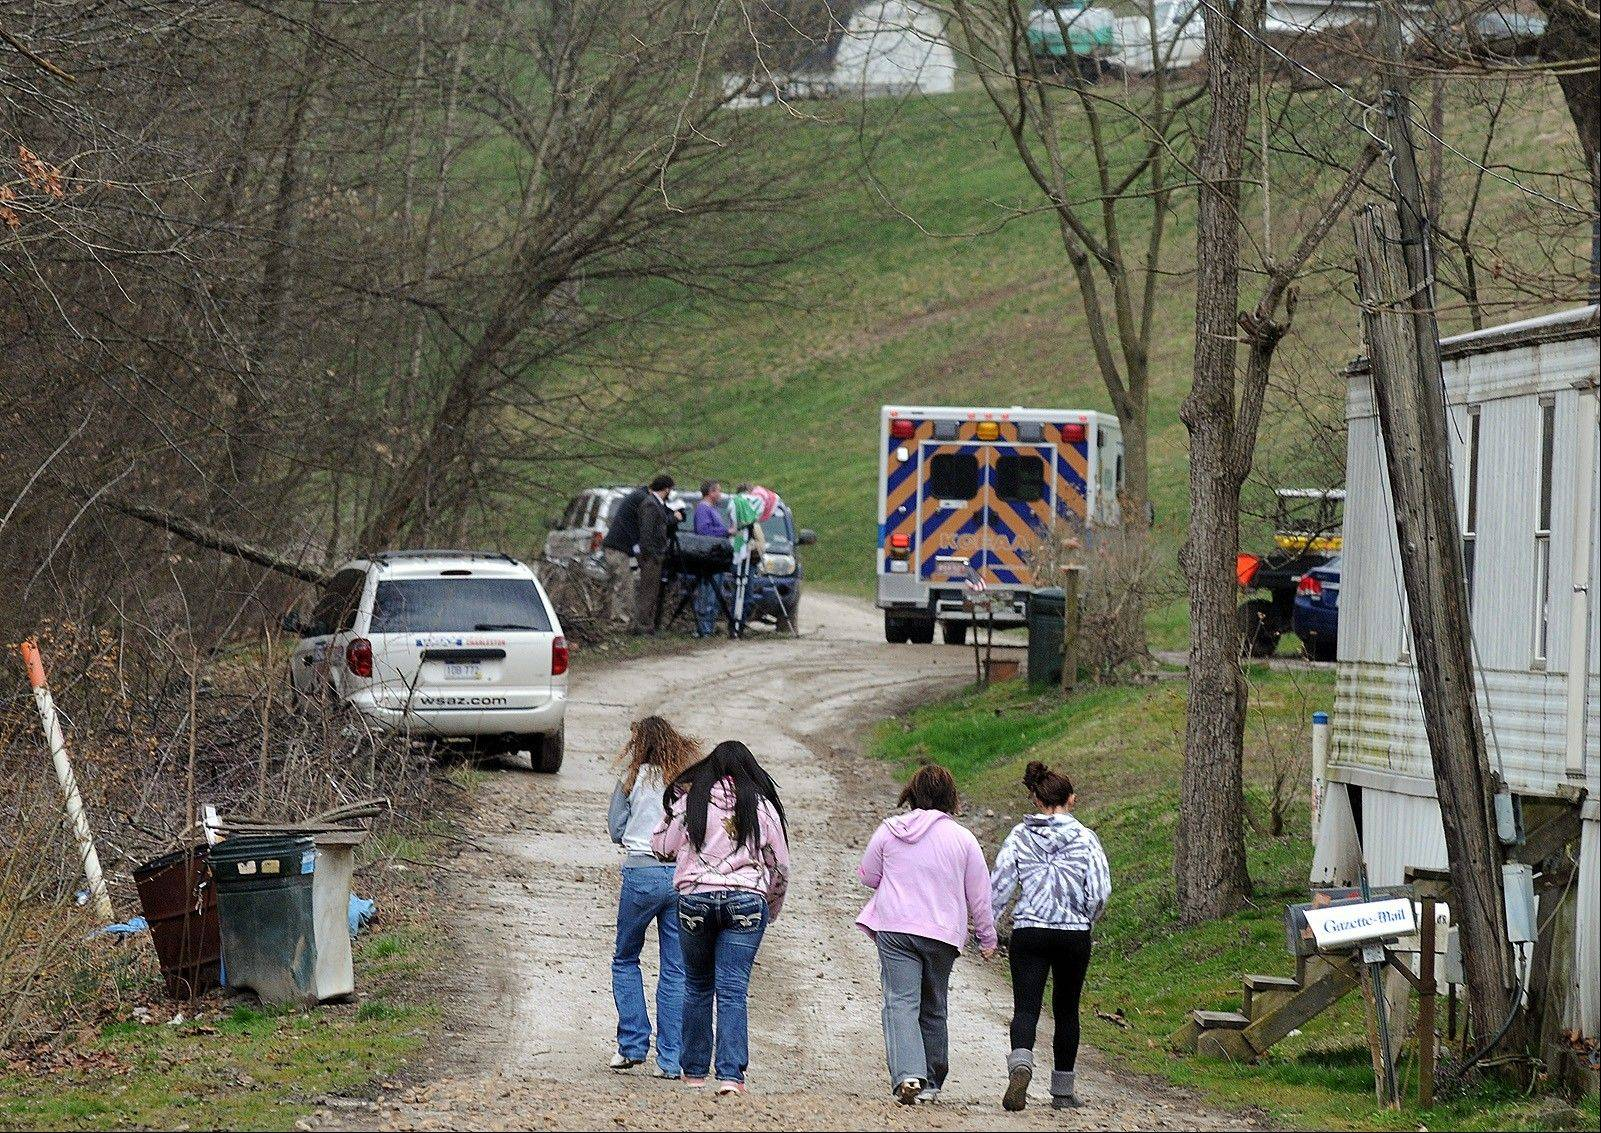 Friends and neighbors walk up and down the gravel road leading to Shain Gandee�s home in Sissonville, W.Va. Gandee, star of the MTV show �Buckwild�; his uncle, David Gandee; and Donald Robert Myers were found dead in the family�s Ford Bronco Monday morning. Shain Gandee died doing what made him famous: careening through huge mudholes in his SUV, taking chances most others won�t, living free and reckless in front of reality-show TV cameras.